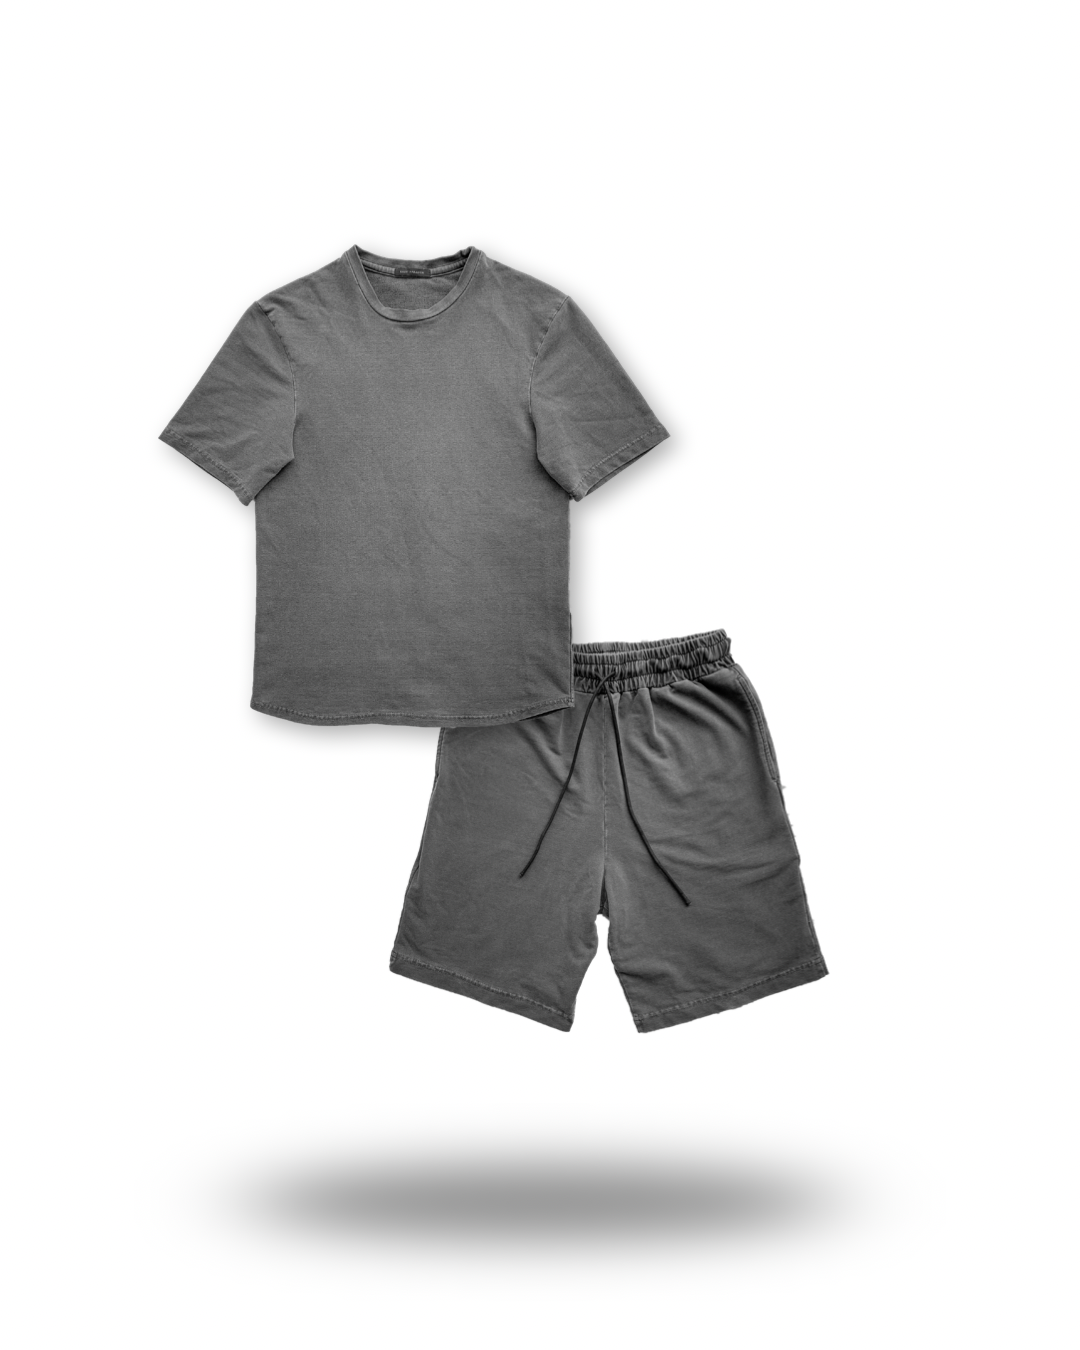 Grey Dyed Washed Set